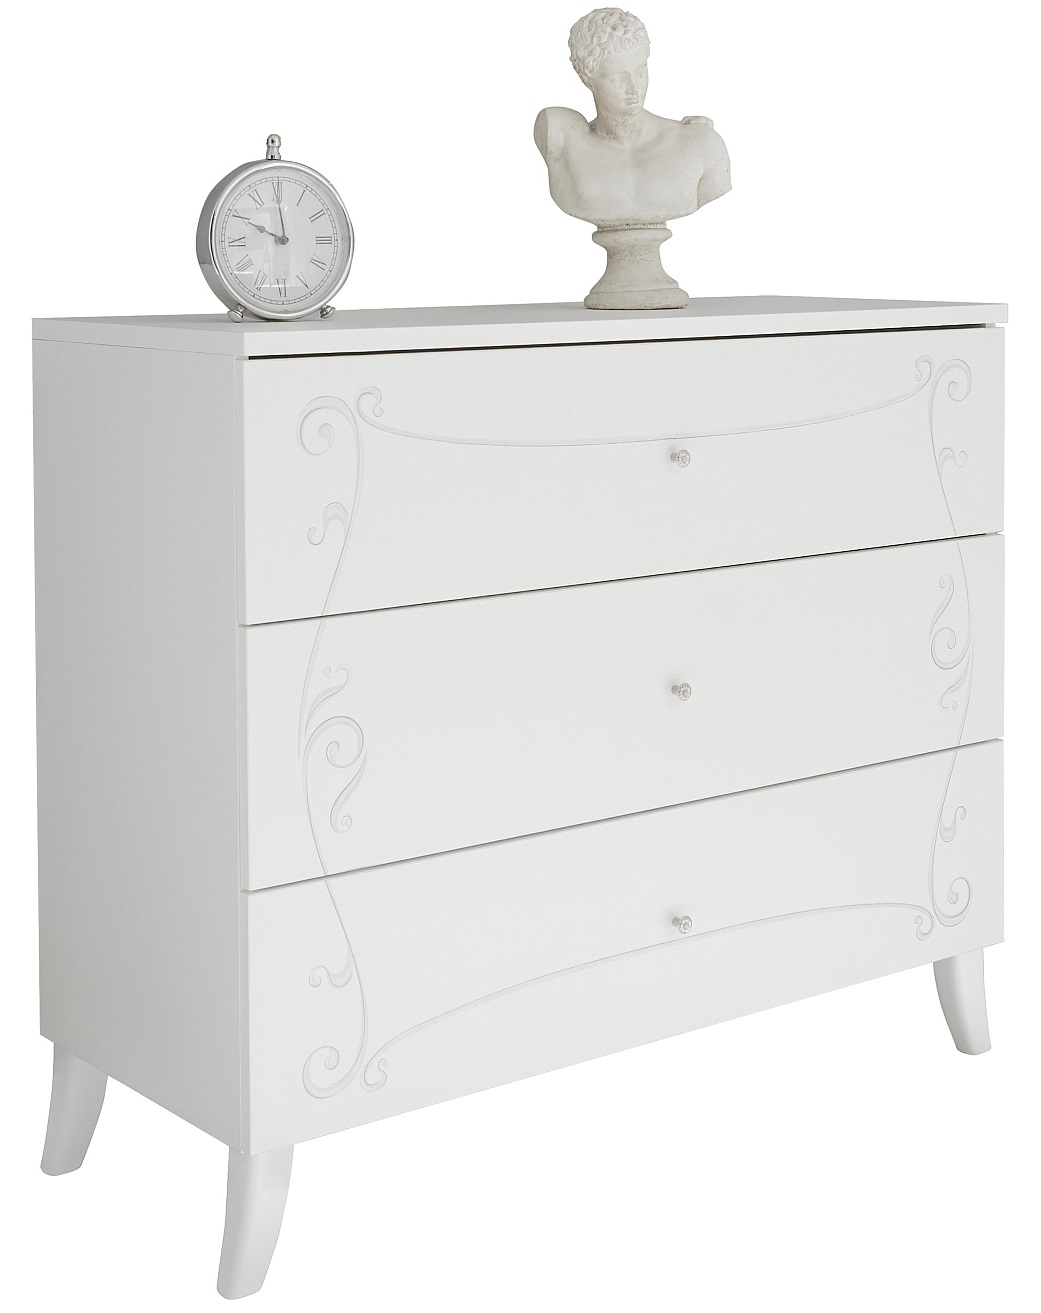 Commode Soler 104 cm breed in mat wit